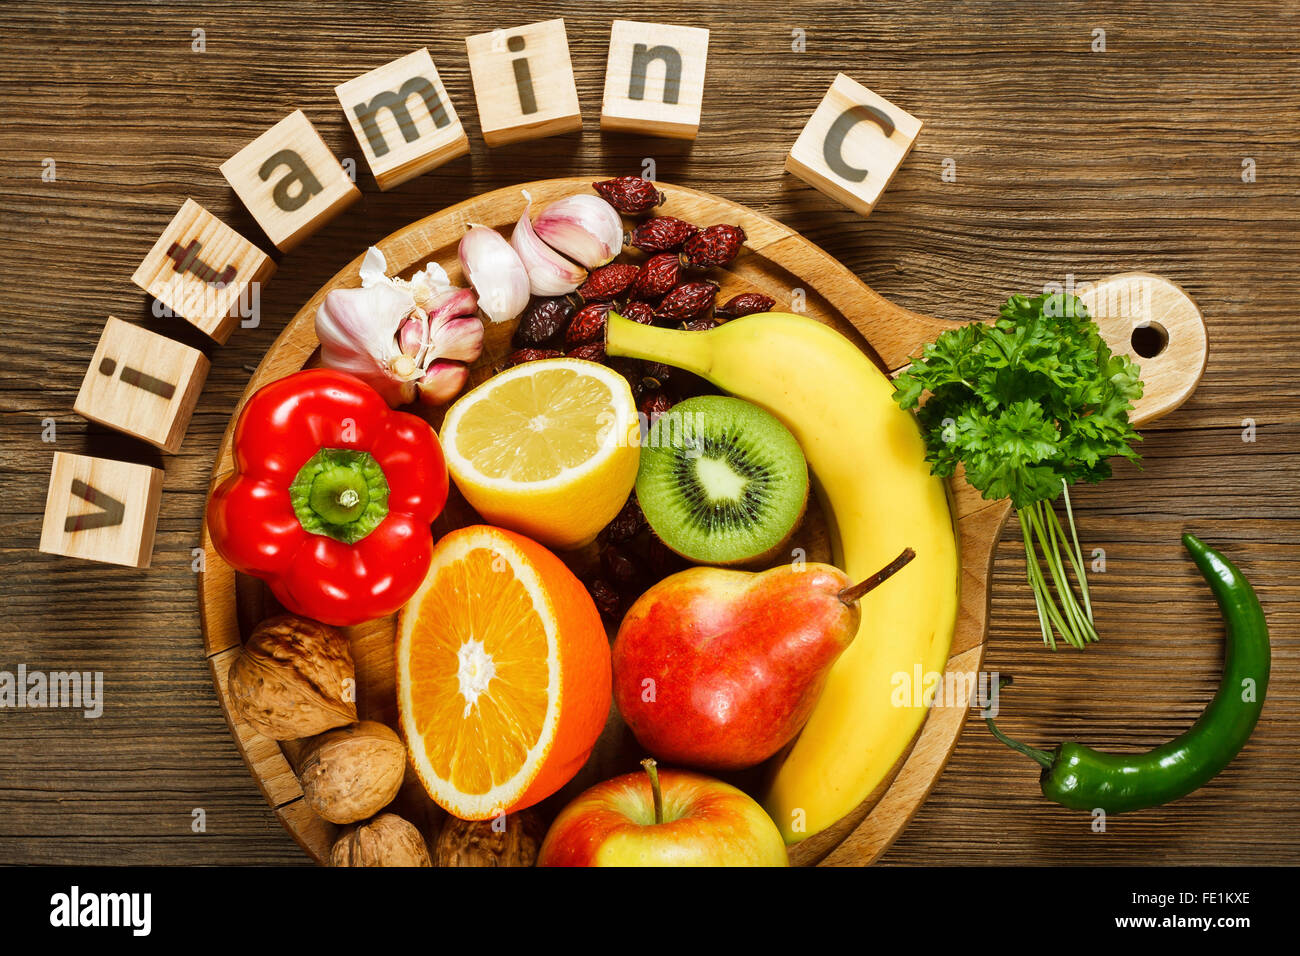 Vitamin C in fruits and vegetables. Natural products rich in vitamin C - Stock Image